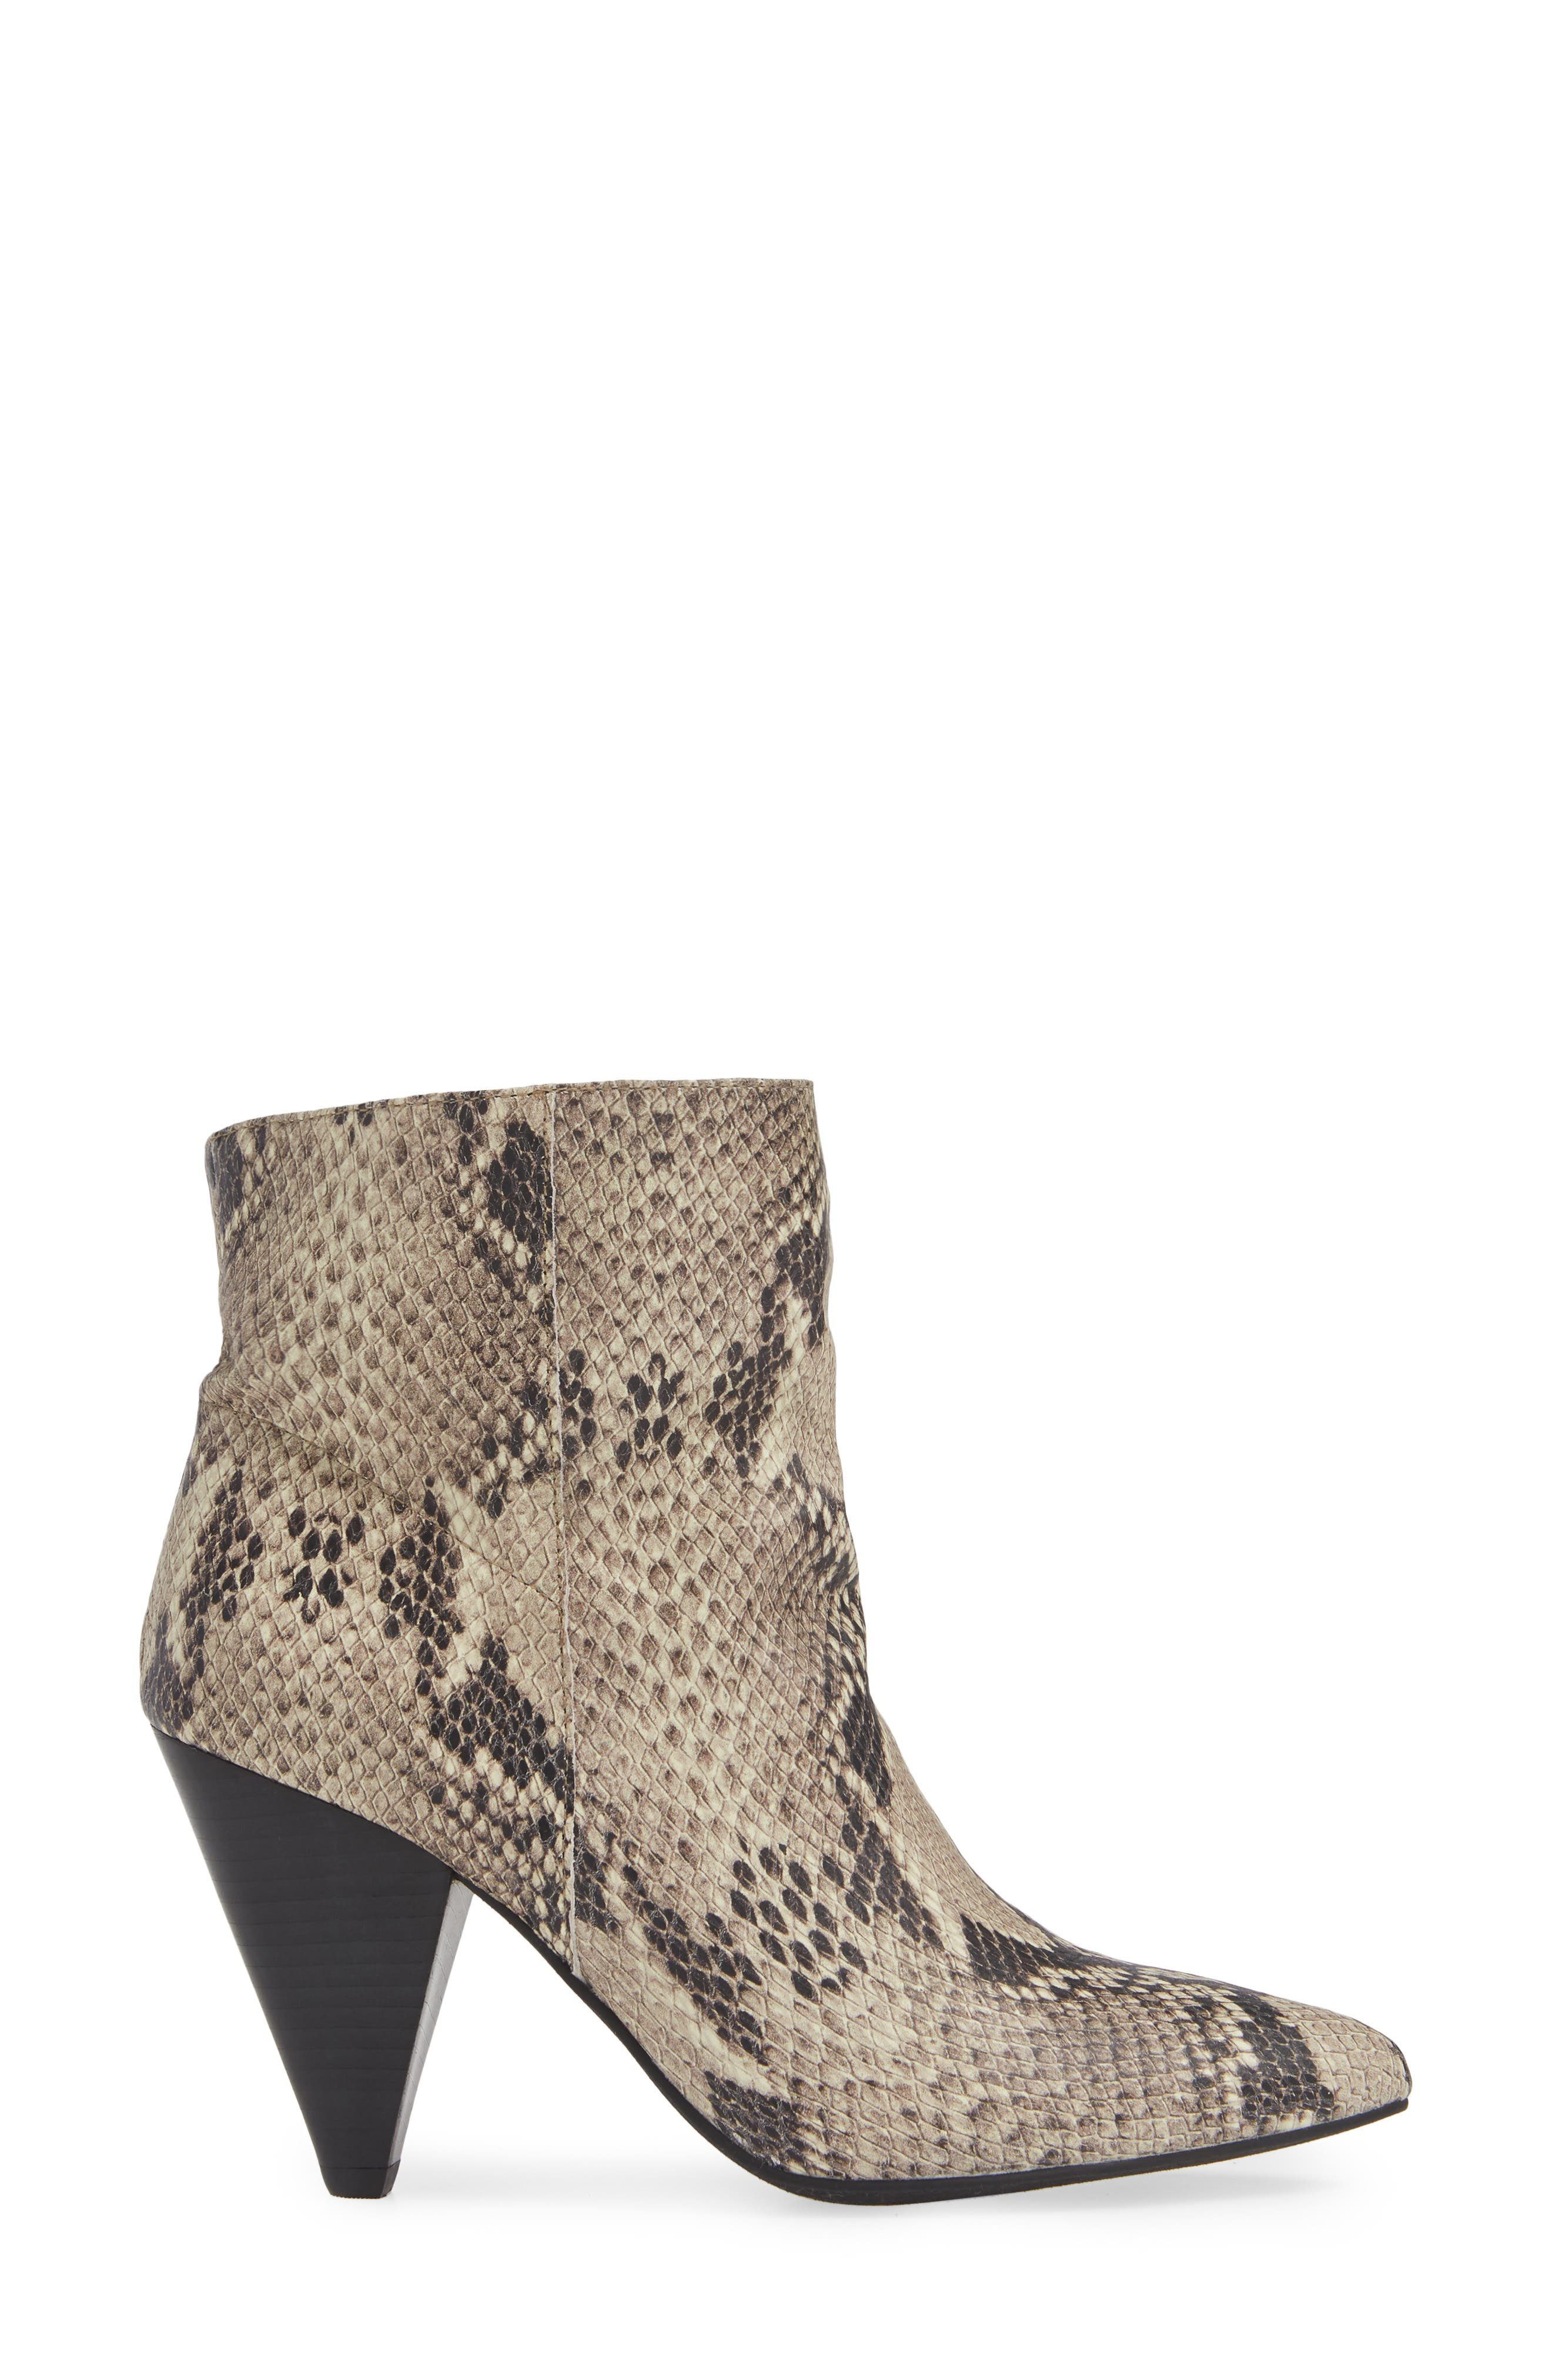 Scope Bootie,                             Alternate thumbnail 3, color,                             PRINTED NATURAL SNAKE LEATHER